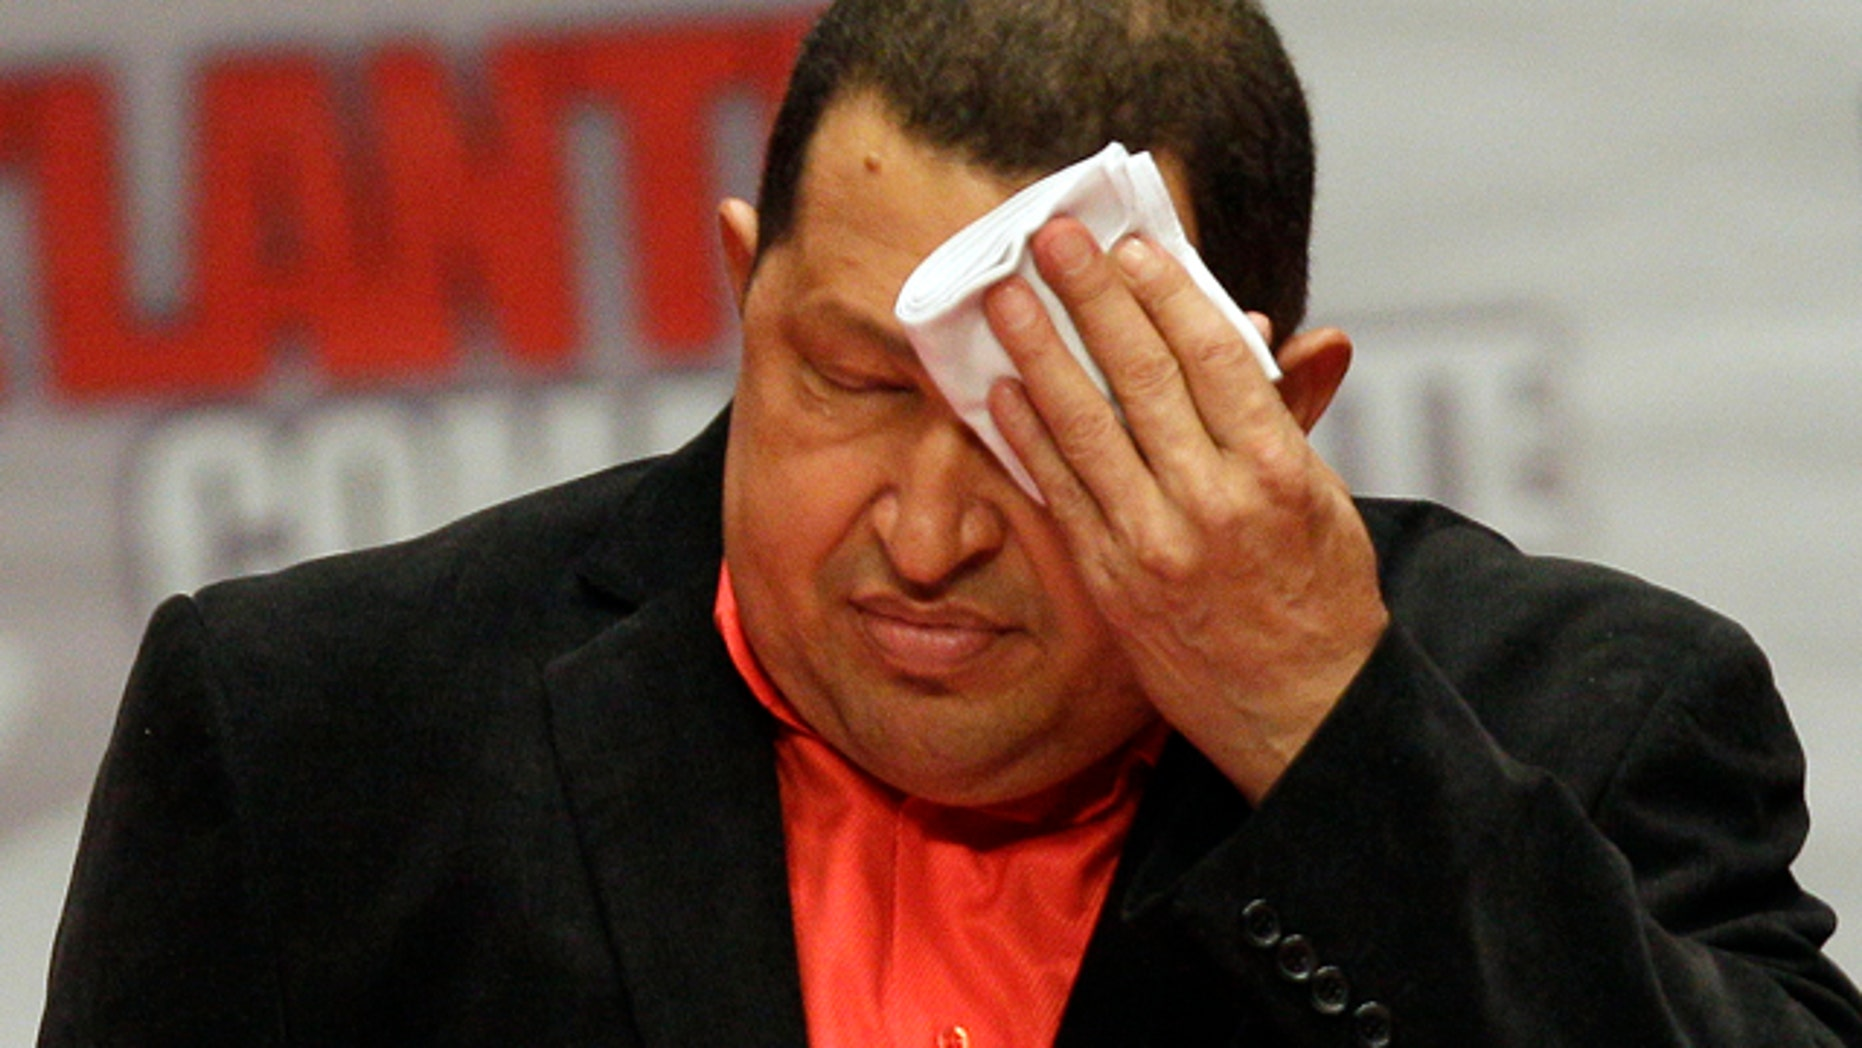 Feb. 23: President Hugo Chavez wipes his forehead as he attends a concert in his honor at the Teresa Carreno Theater in Caracas, Venezuela.